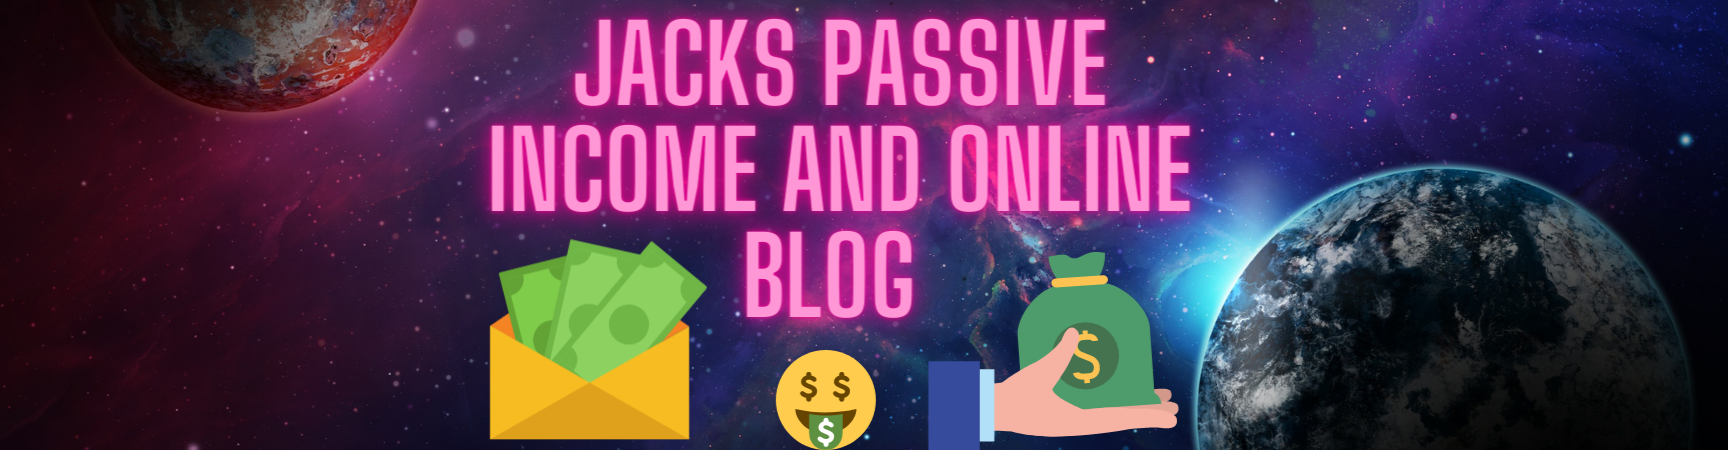 Jack's Passive Income and Online Blog